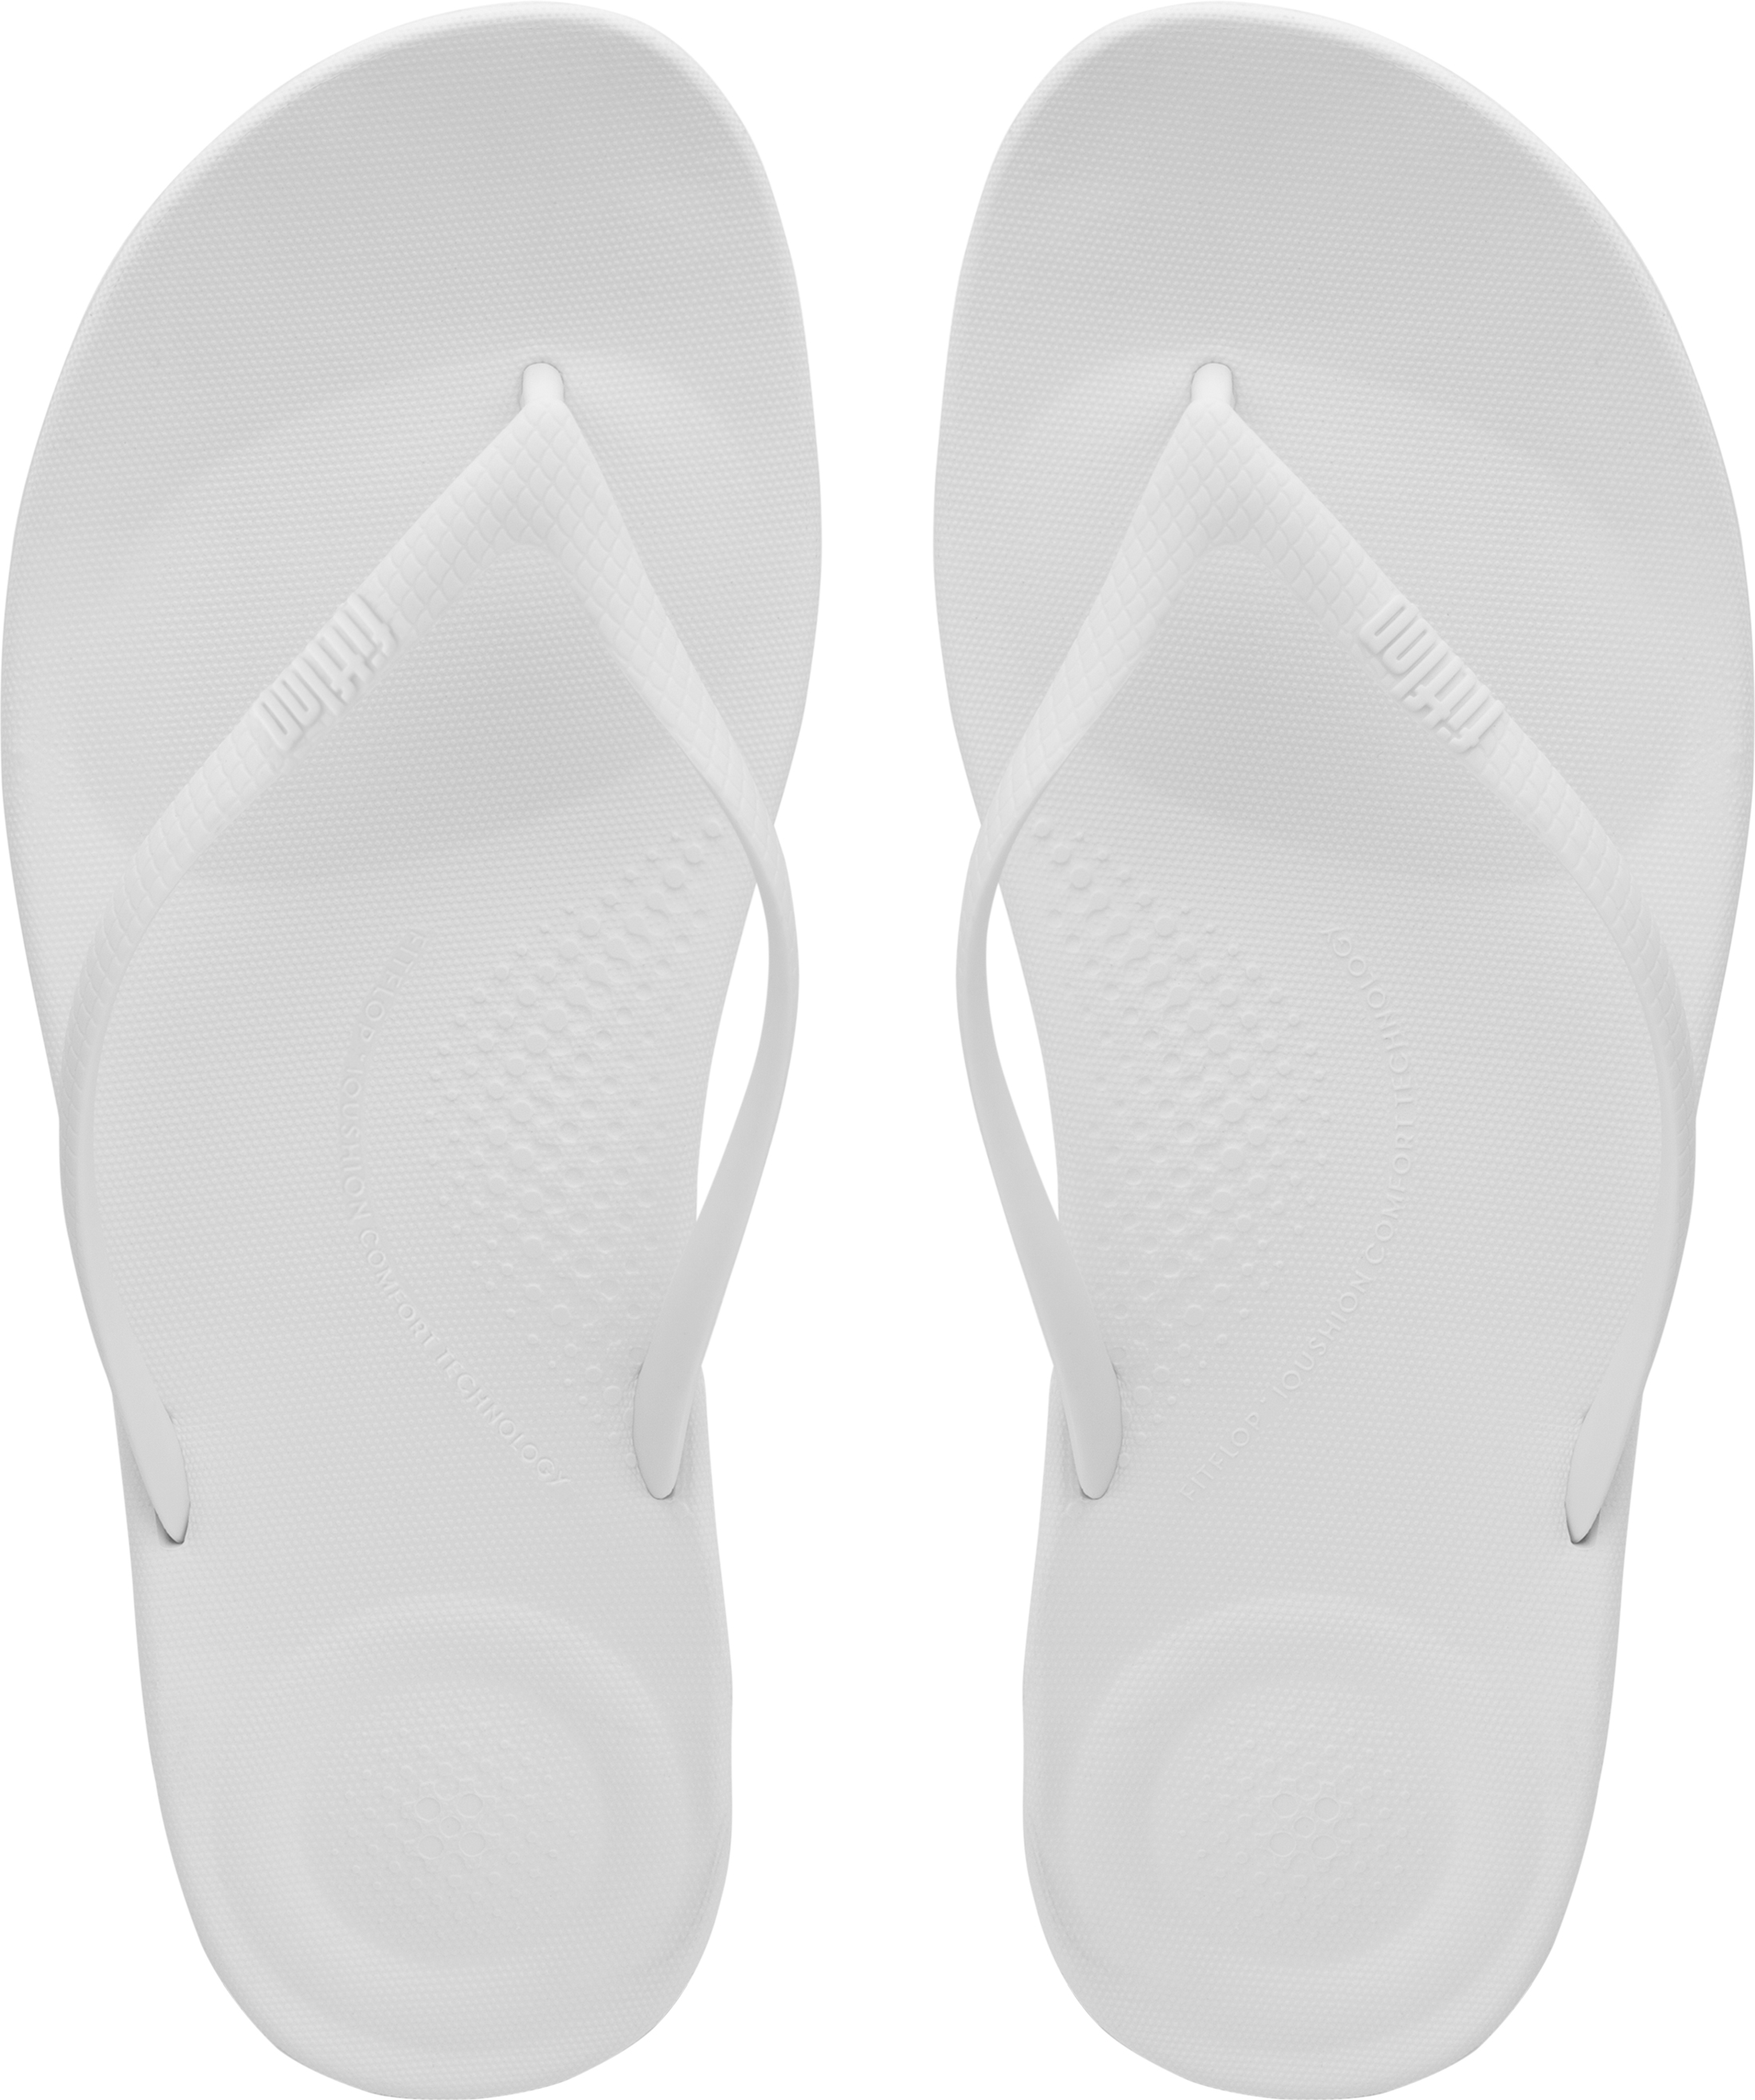 ee8563eb2 FitFlop Women Iqushion Ergonomic Flip-flops Toe Thong Sandals White ...